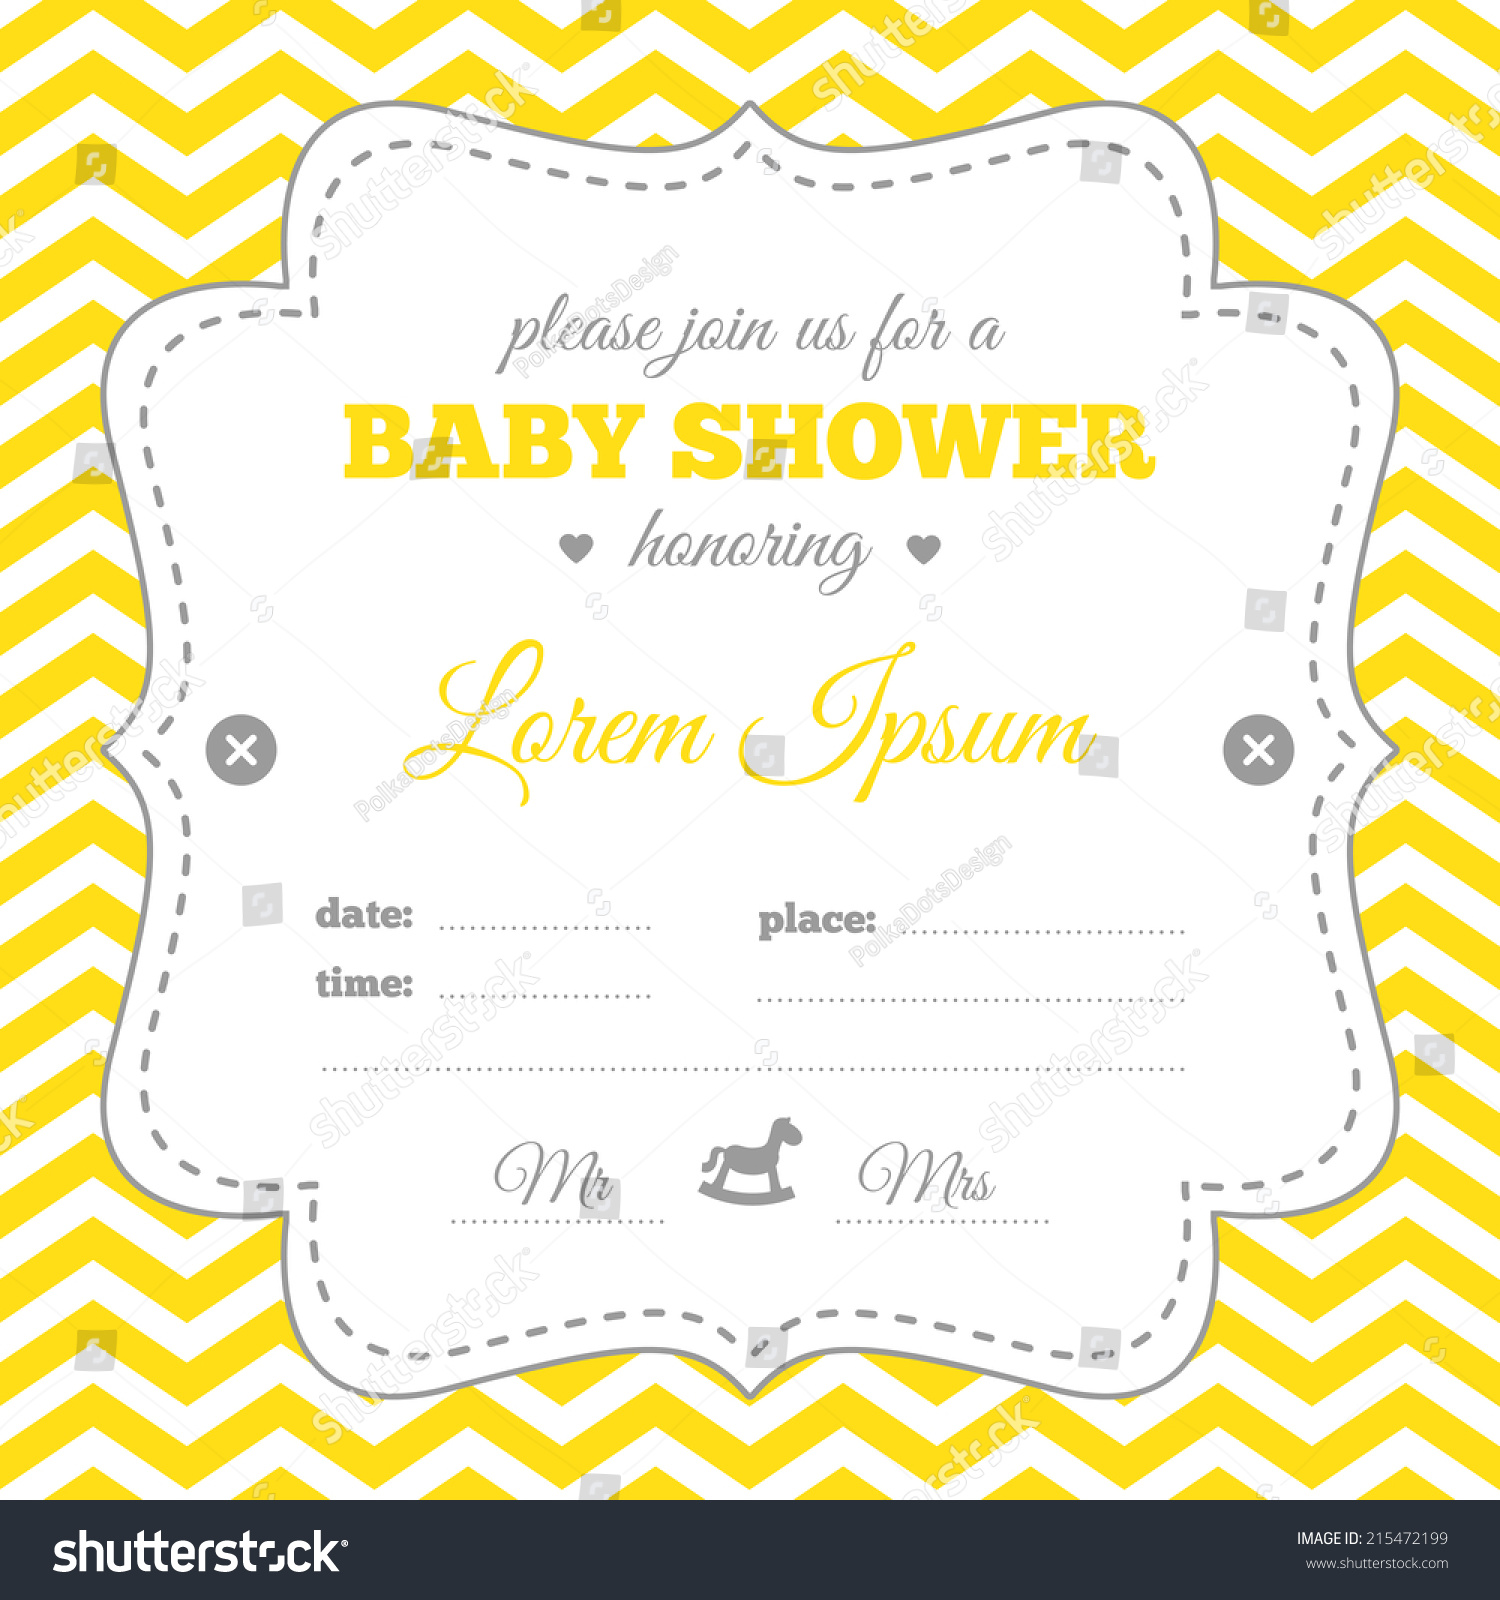 baby shower invitation white gray yellow stock vector, Baby shower